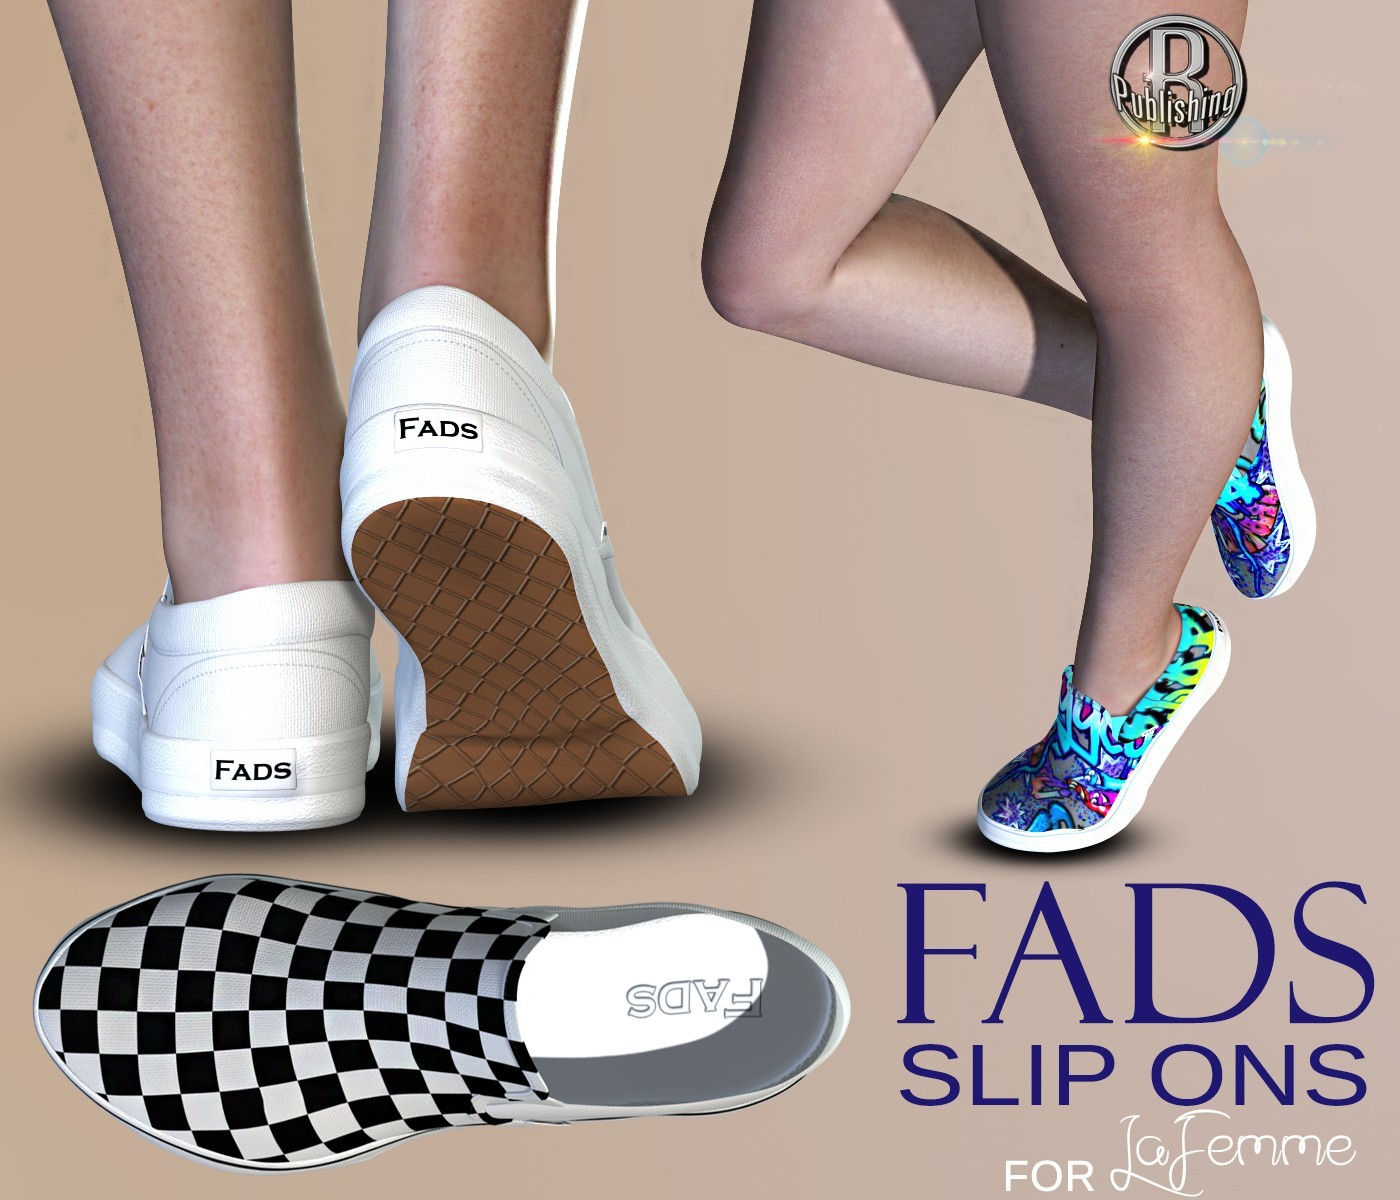 FADS Slip Ons for La Femme and Poser 11 by RPublishing